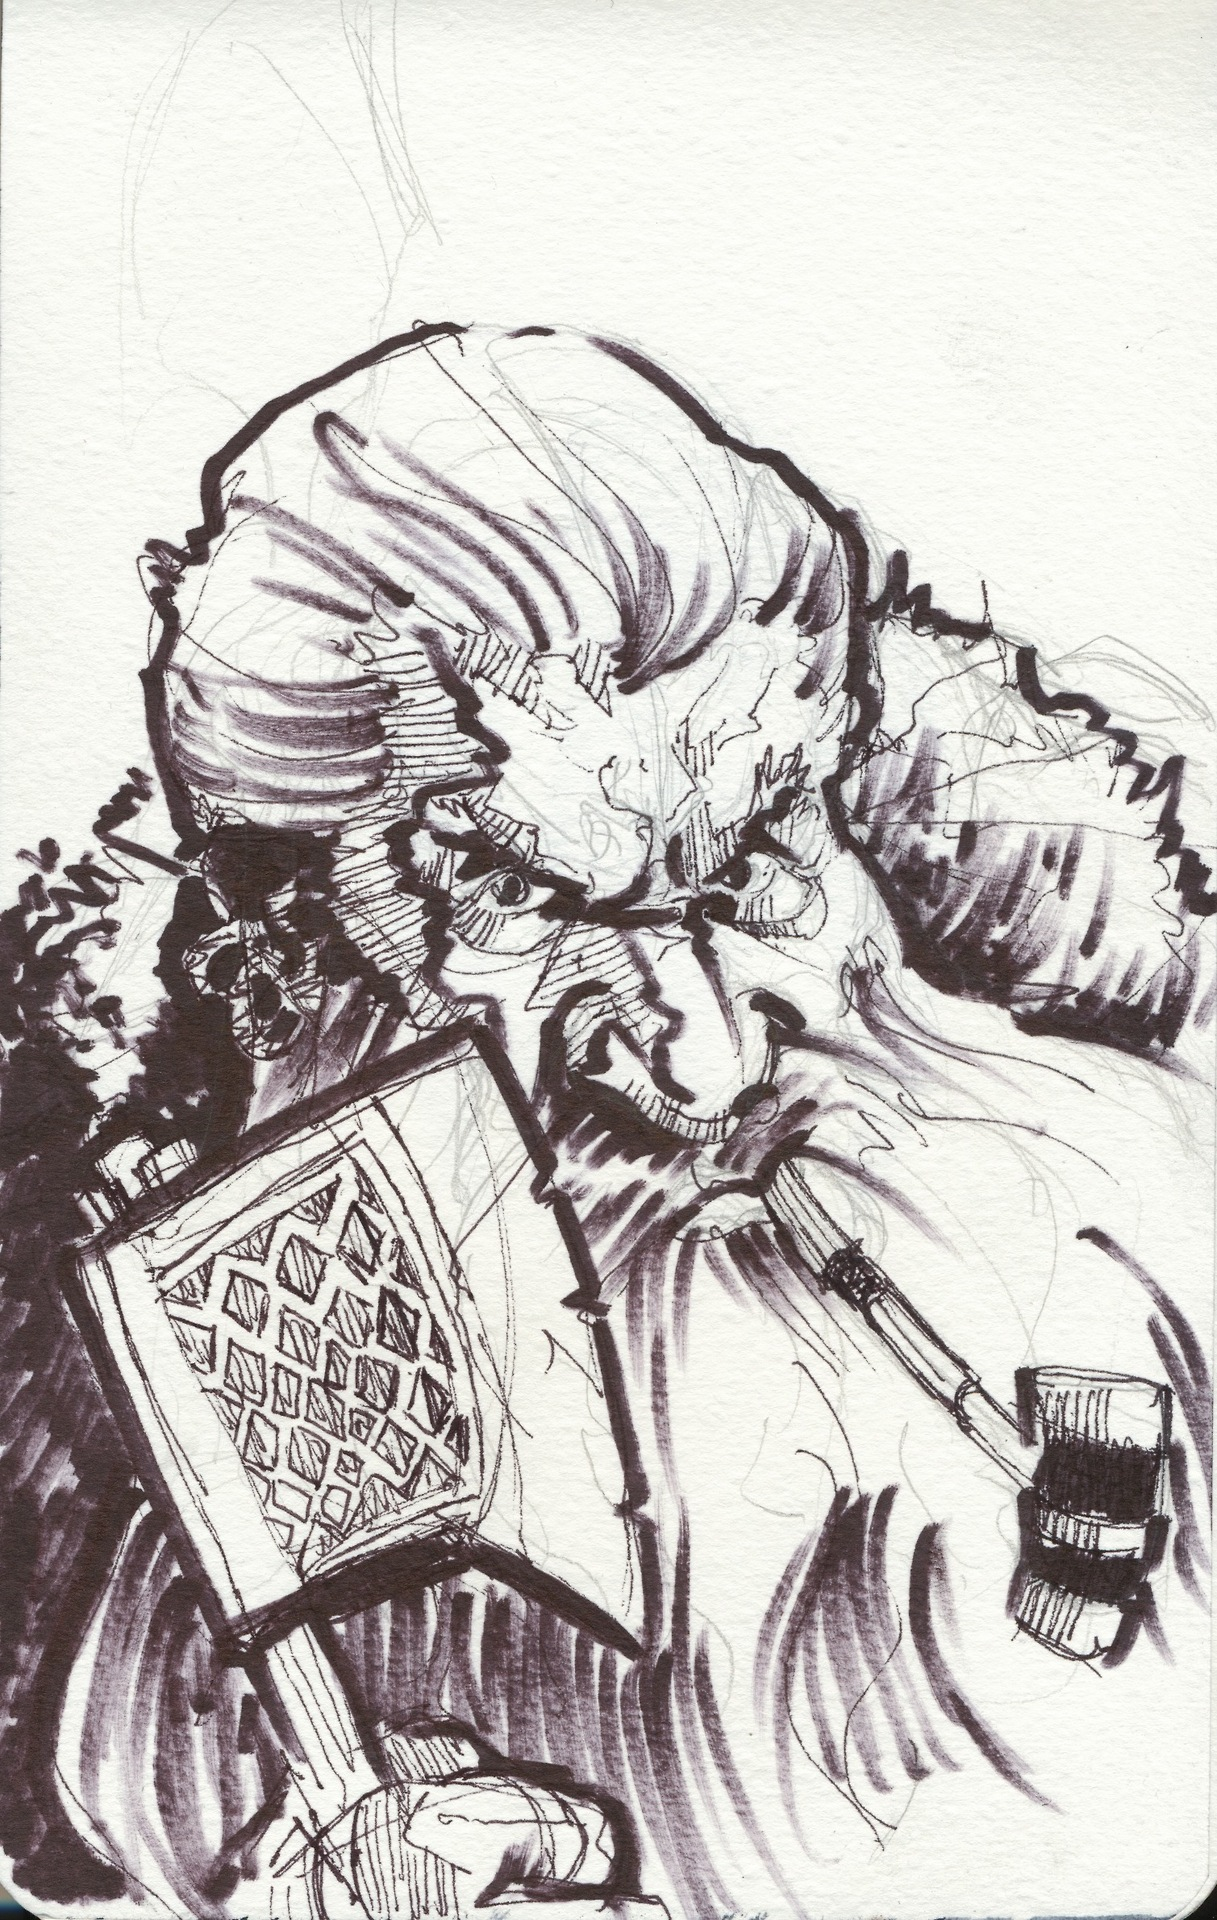 "The original title was to be ""Dwarves are not for Tossing"", but I have a feeling there would be some UK residents who might have giggled at that title. Anyway, I drew a random fantasy dwarf this time around. This is my last update before my three week long US trip, så I cannot guarantee that I will post at the scheduled times during that period. I will try my best, though."